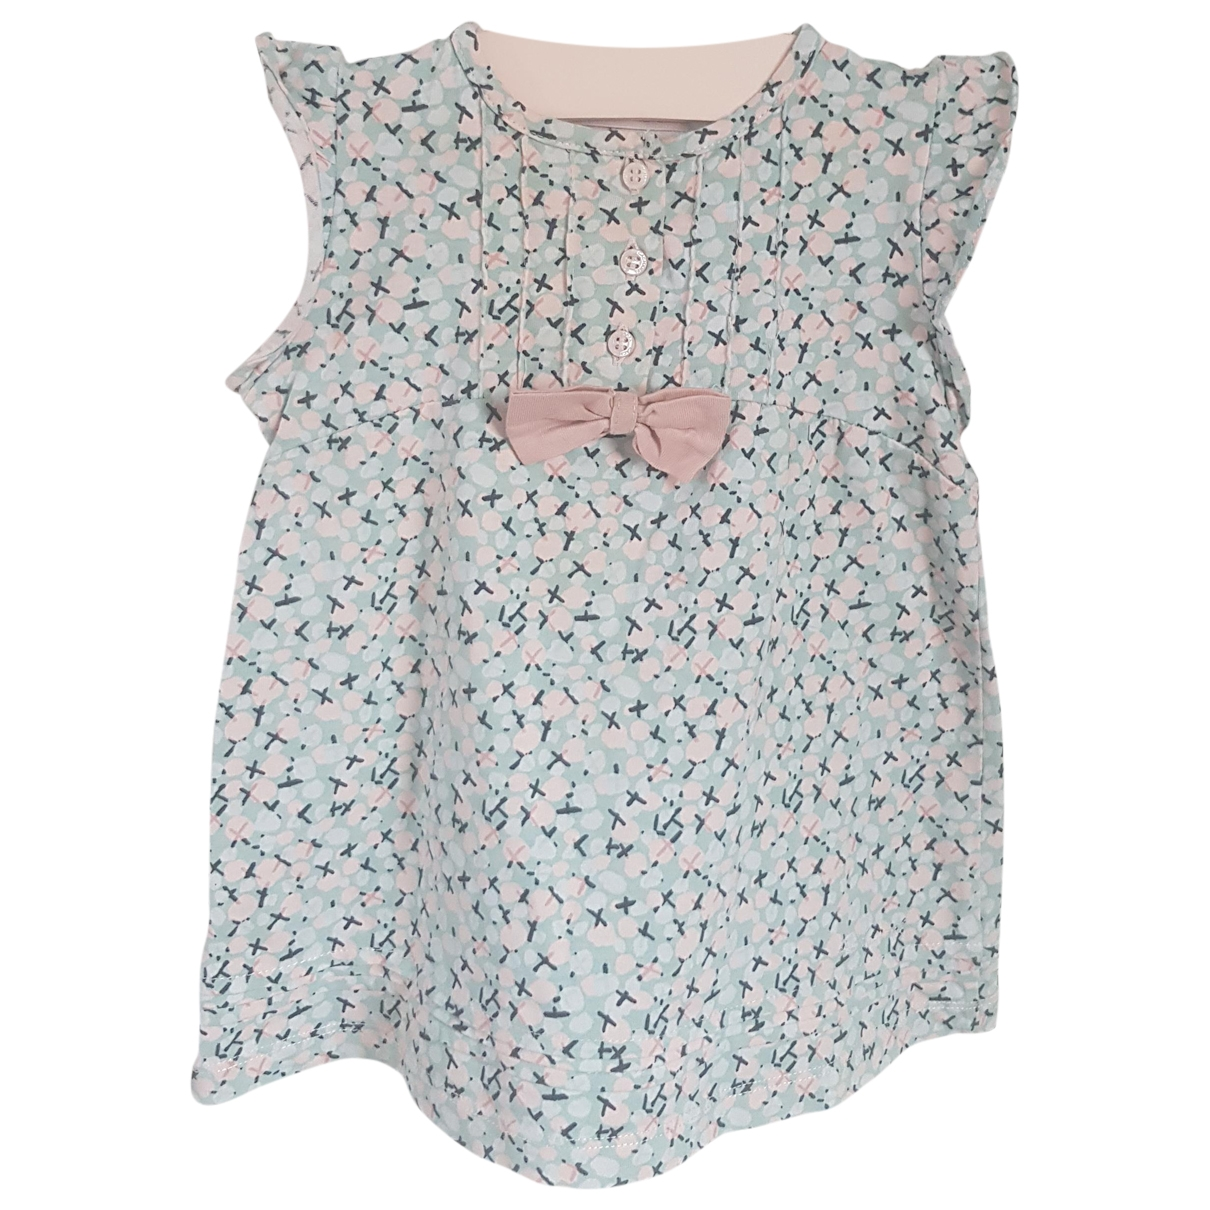 Cacharel \N Blue Cotton dress for Kids 6 months - up to 67cm FR